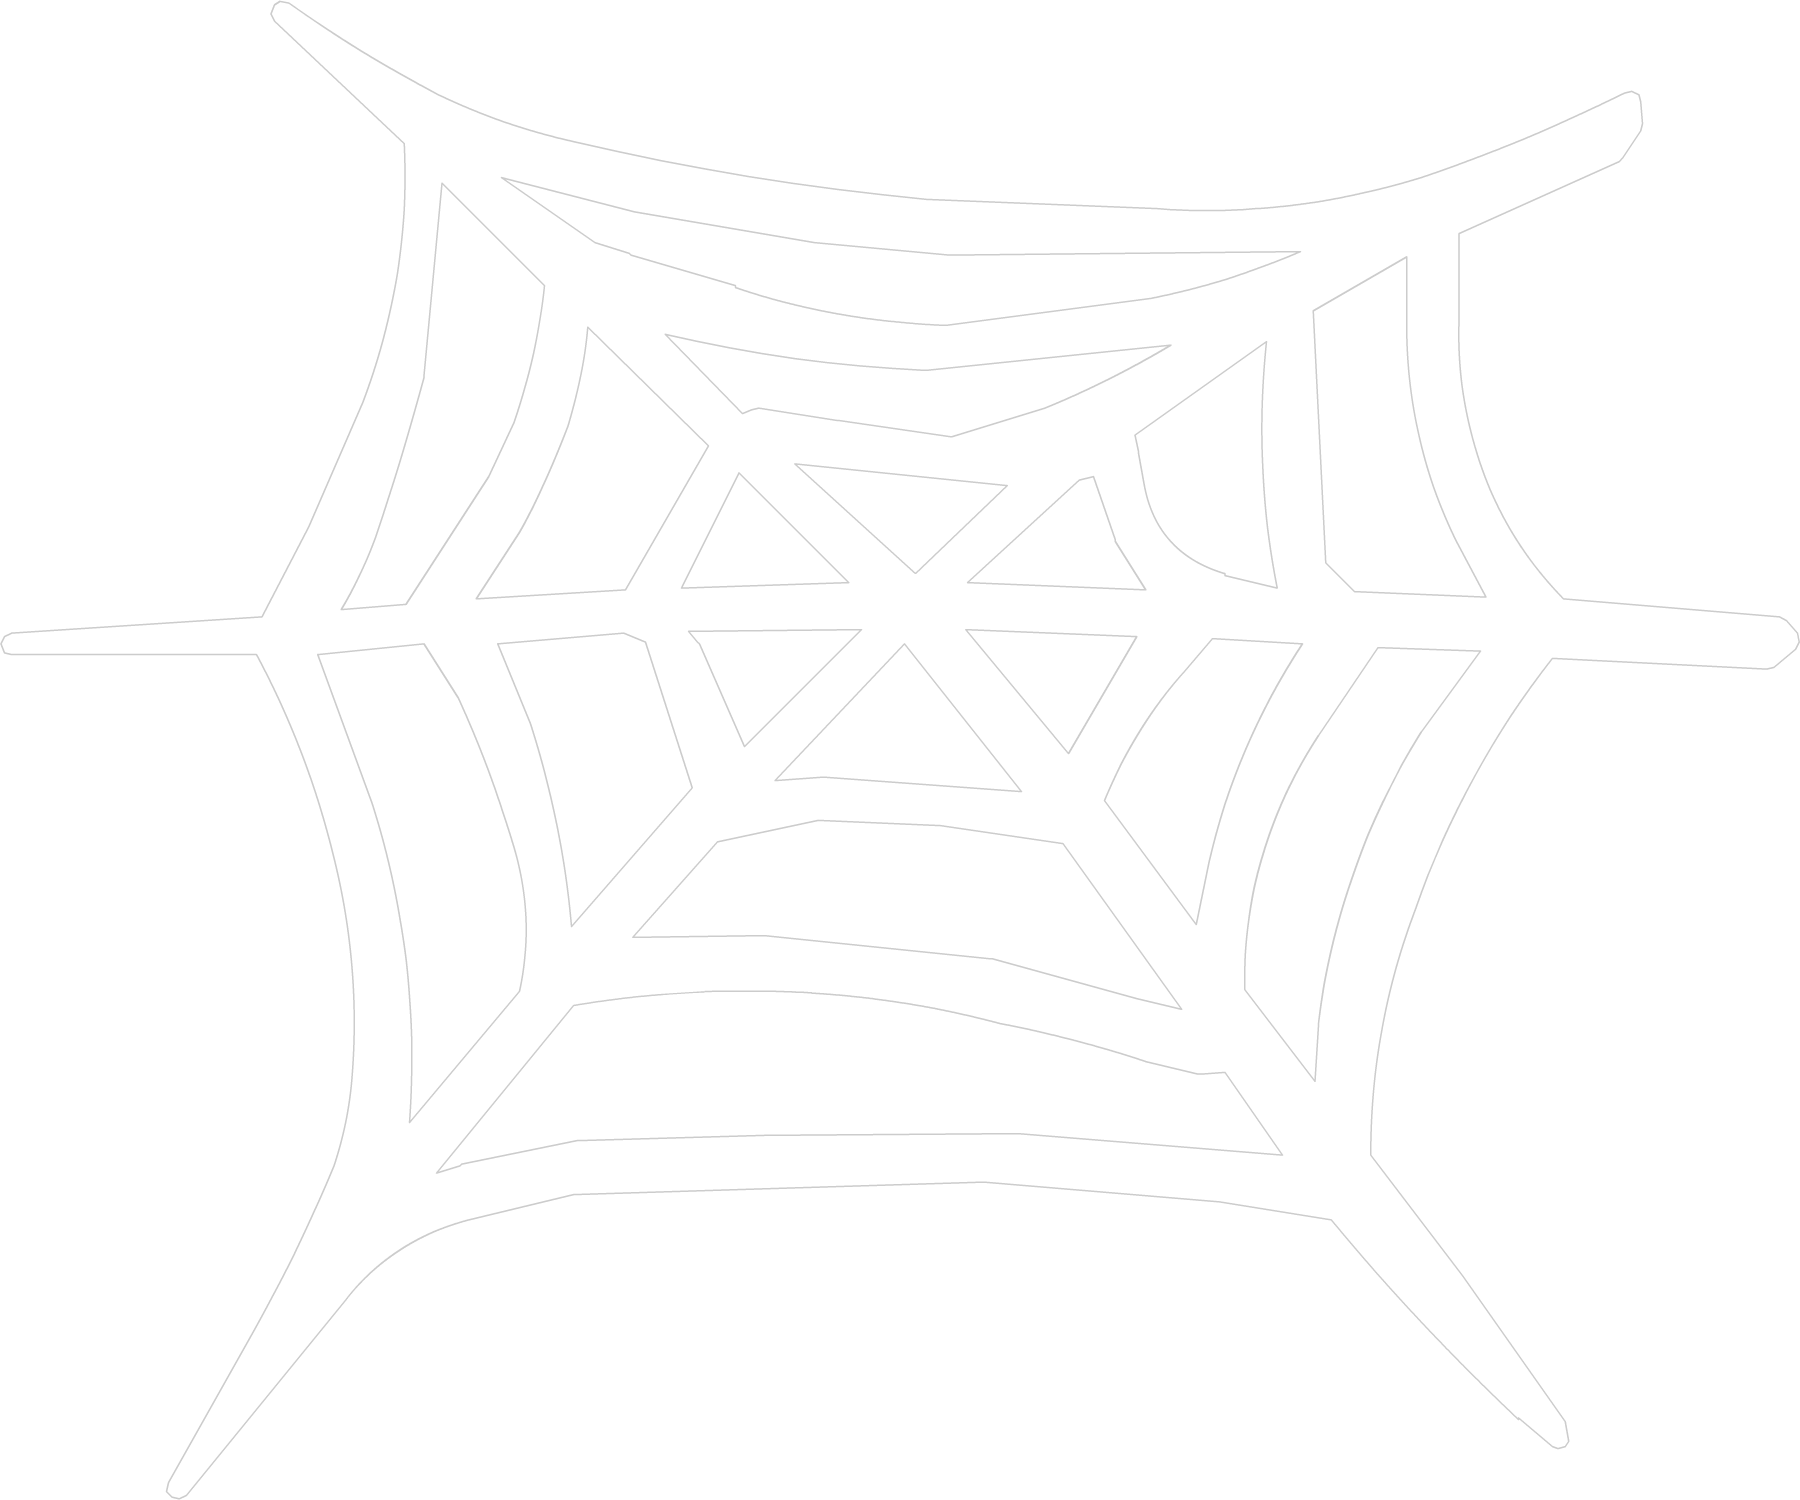 White spider web png. Club penguin wiki fandom